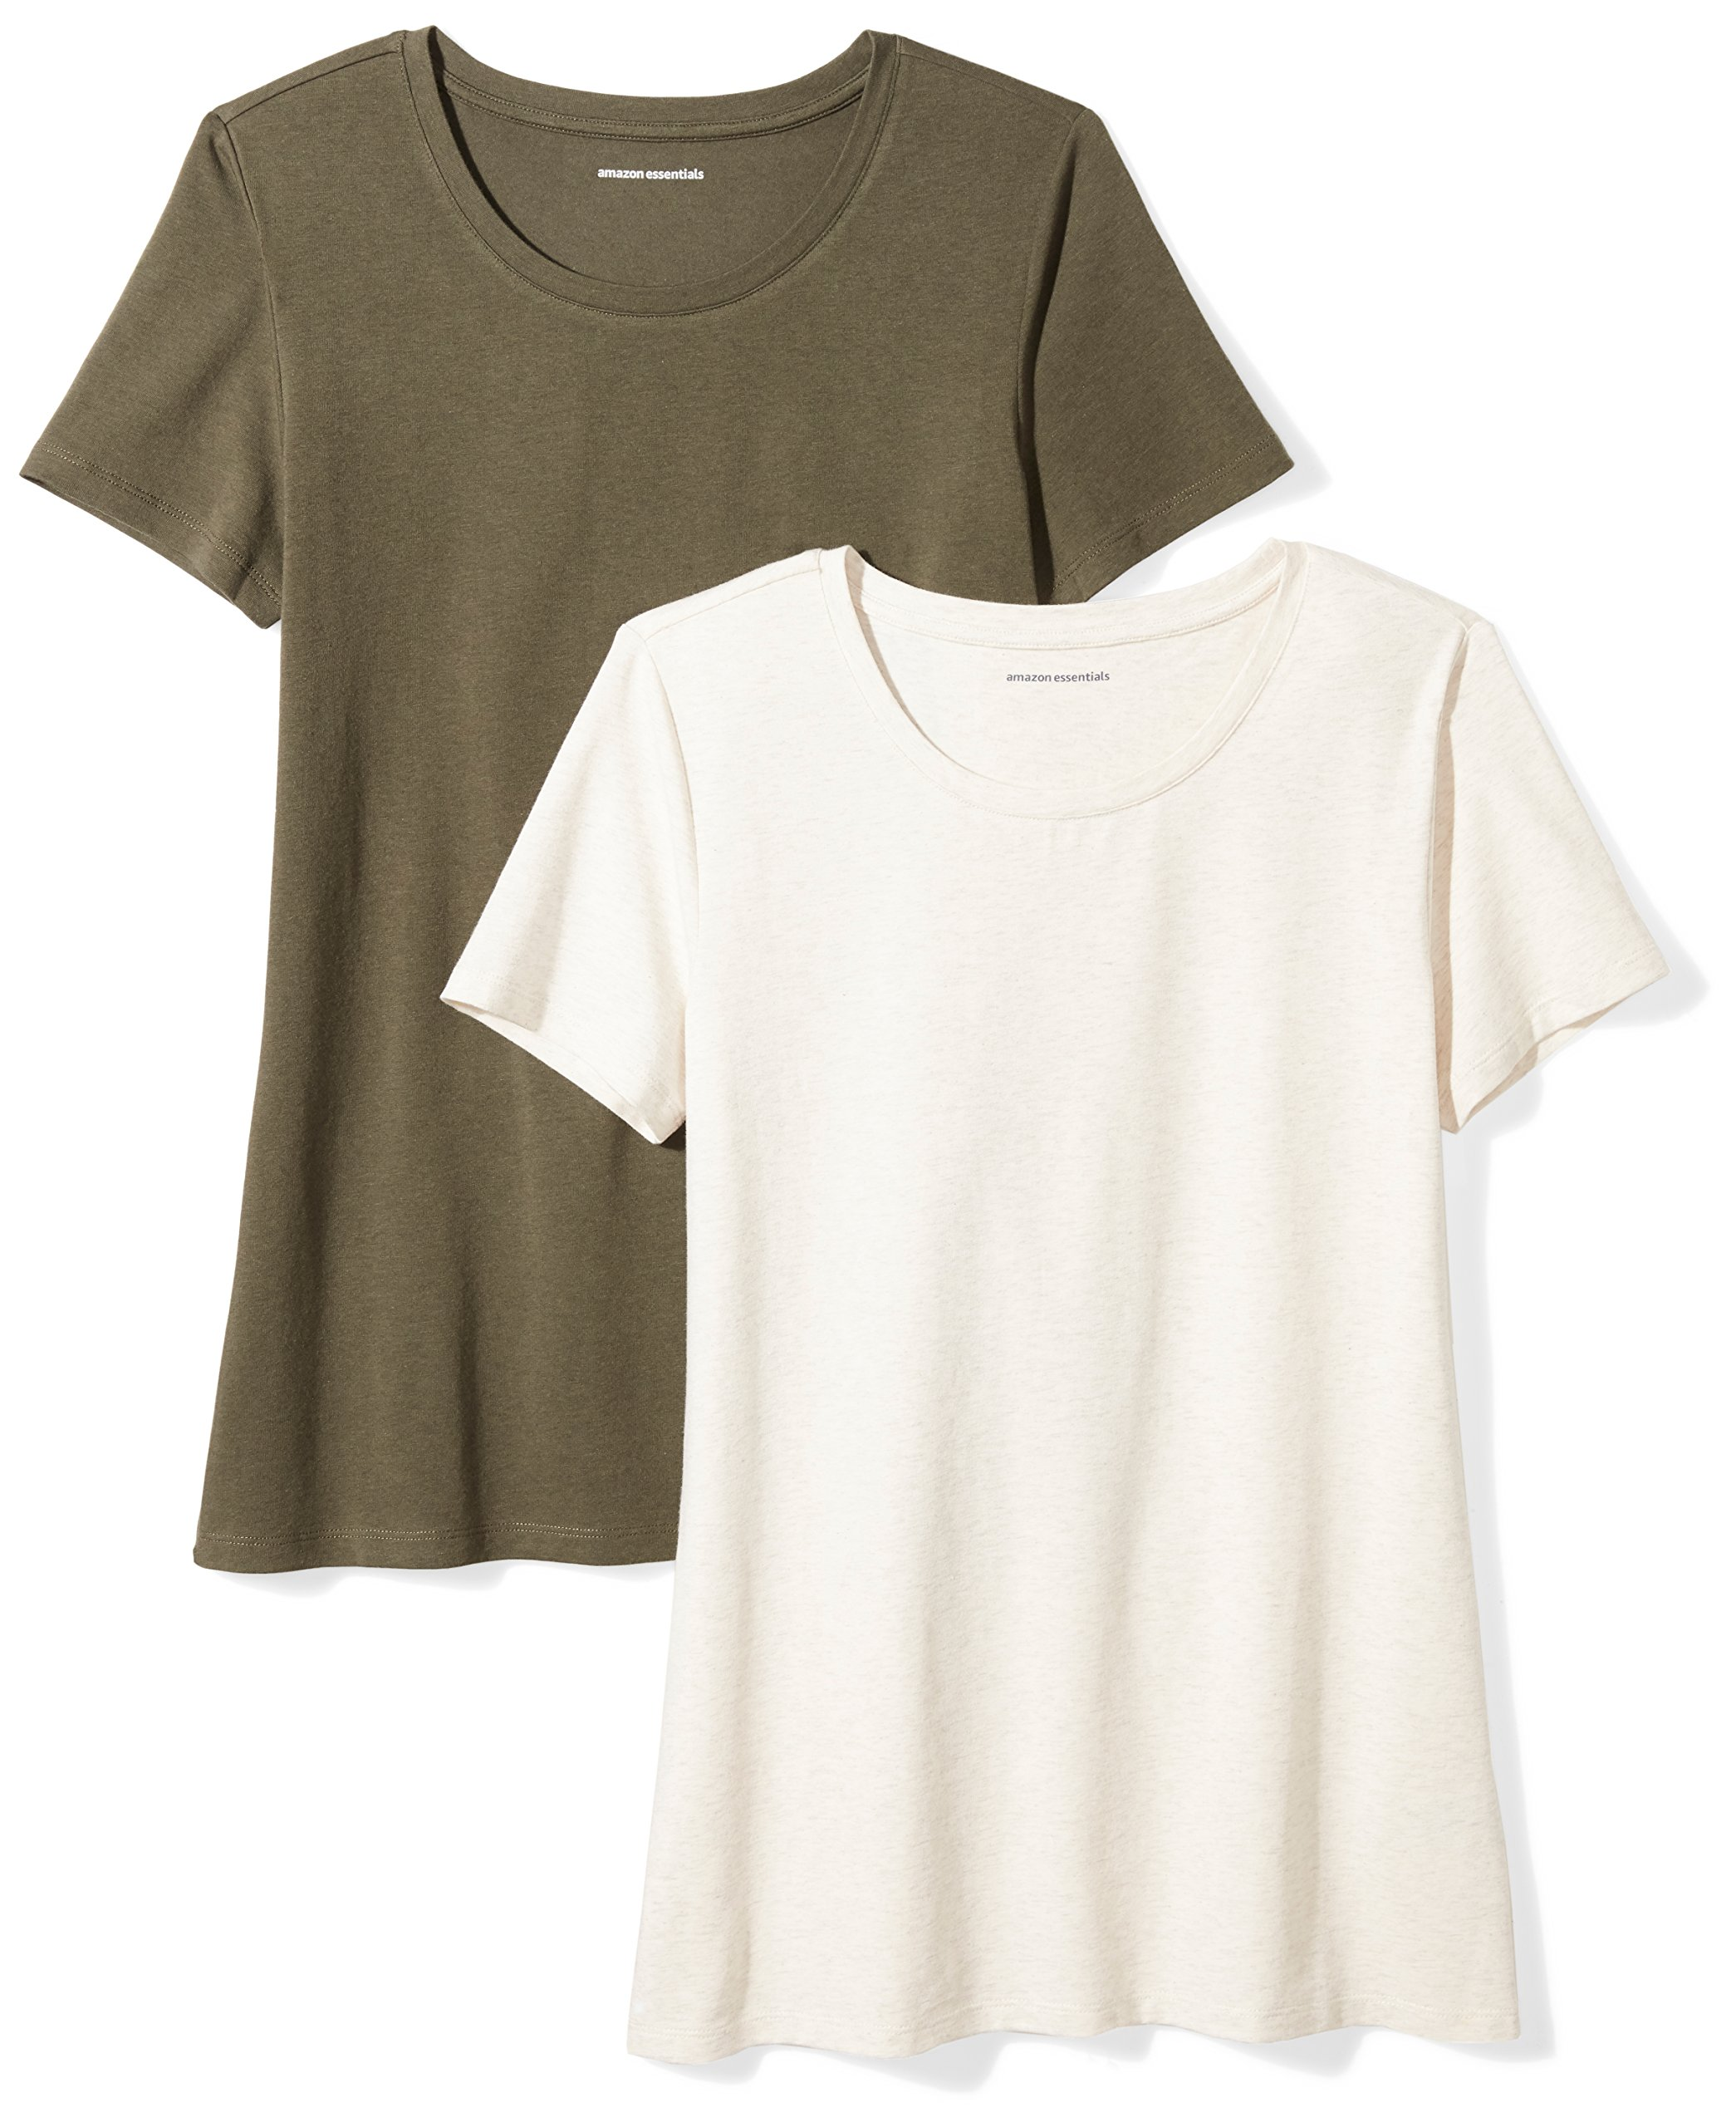 Amazon Essentials Women's 2-Pack Short-Sleeve Crewneck Solid T-Shirt, Olive/Oatmeal Heather, XX-Large